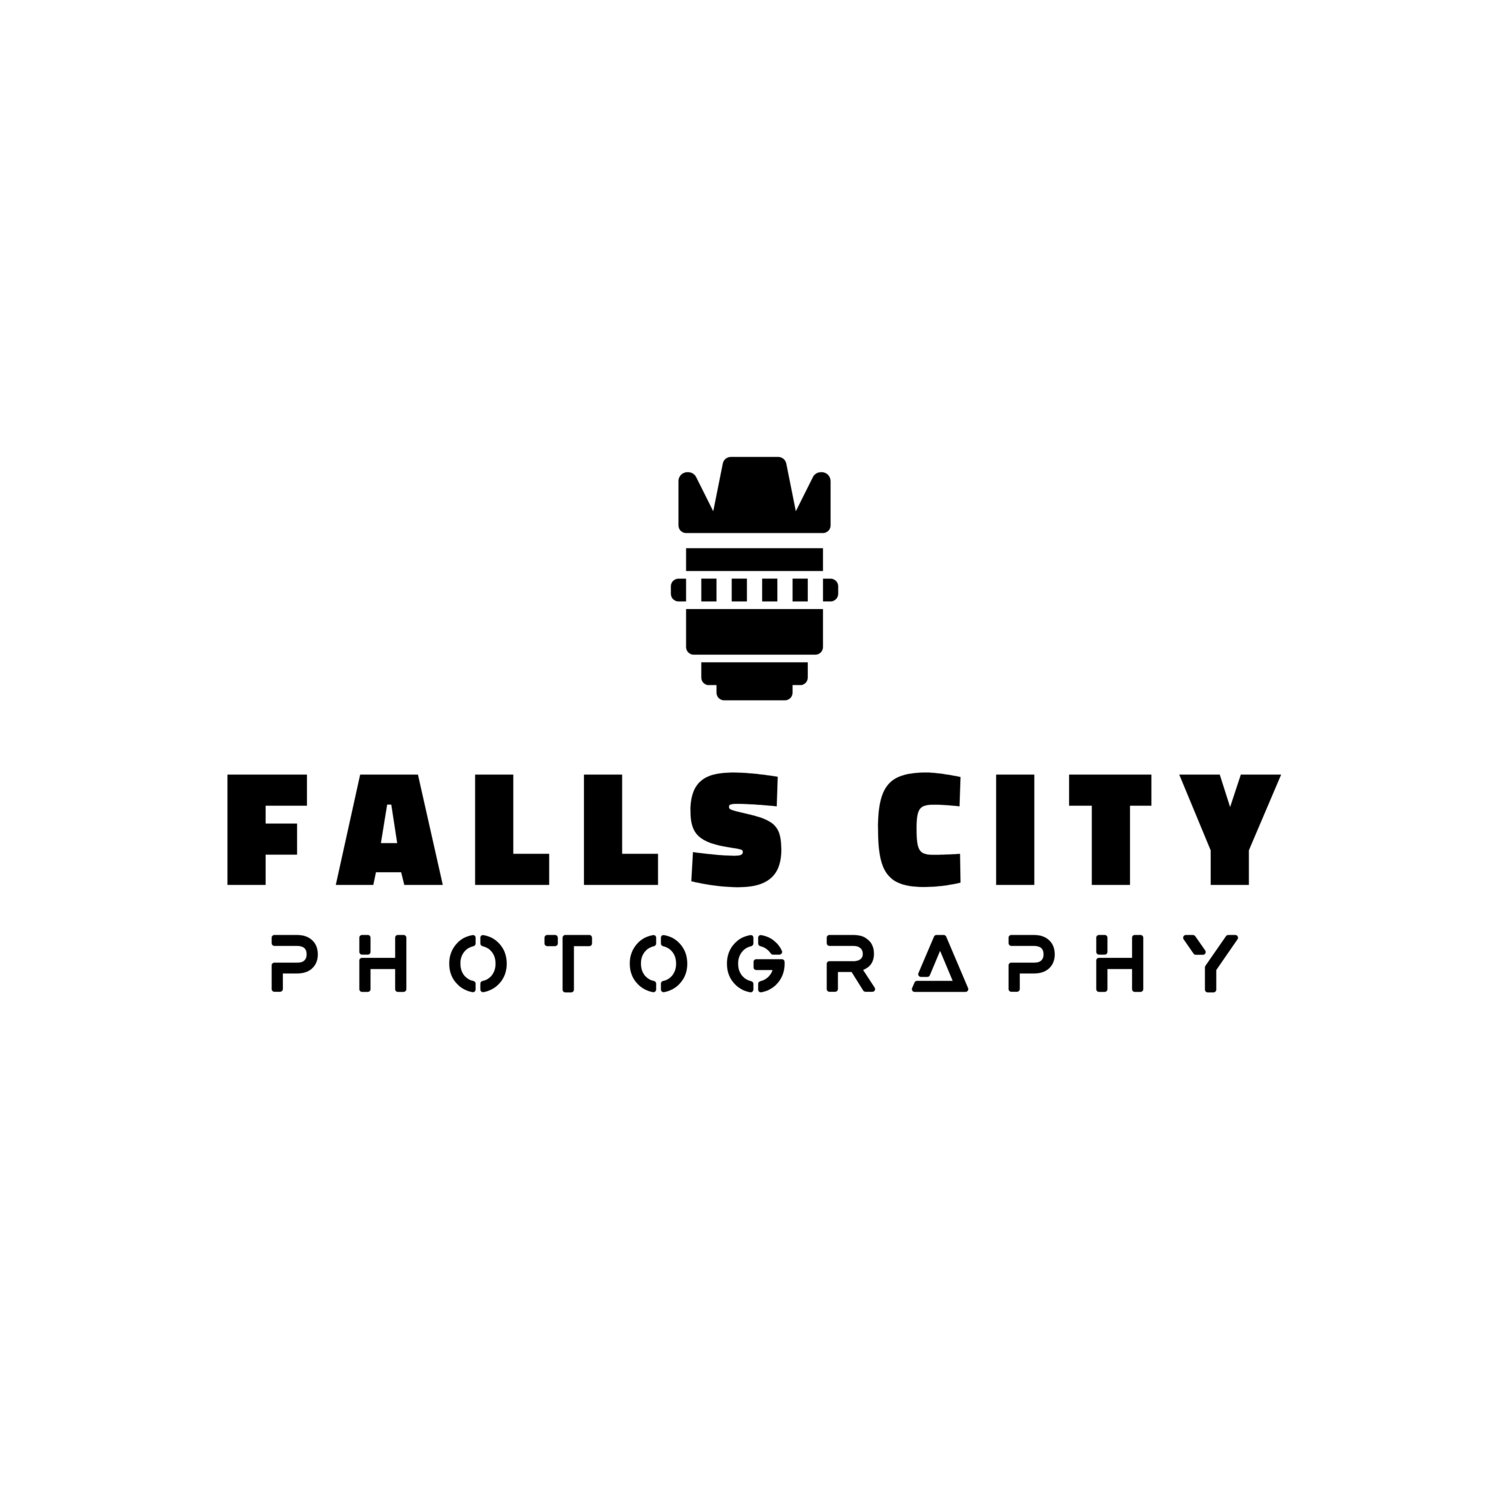 Falls City Photography